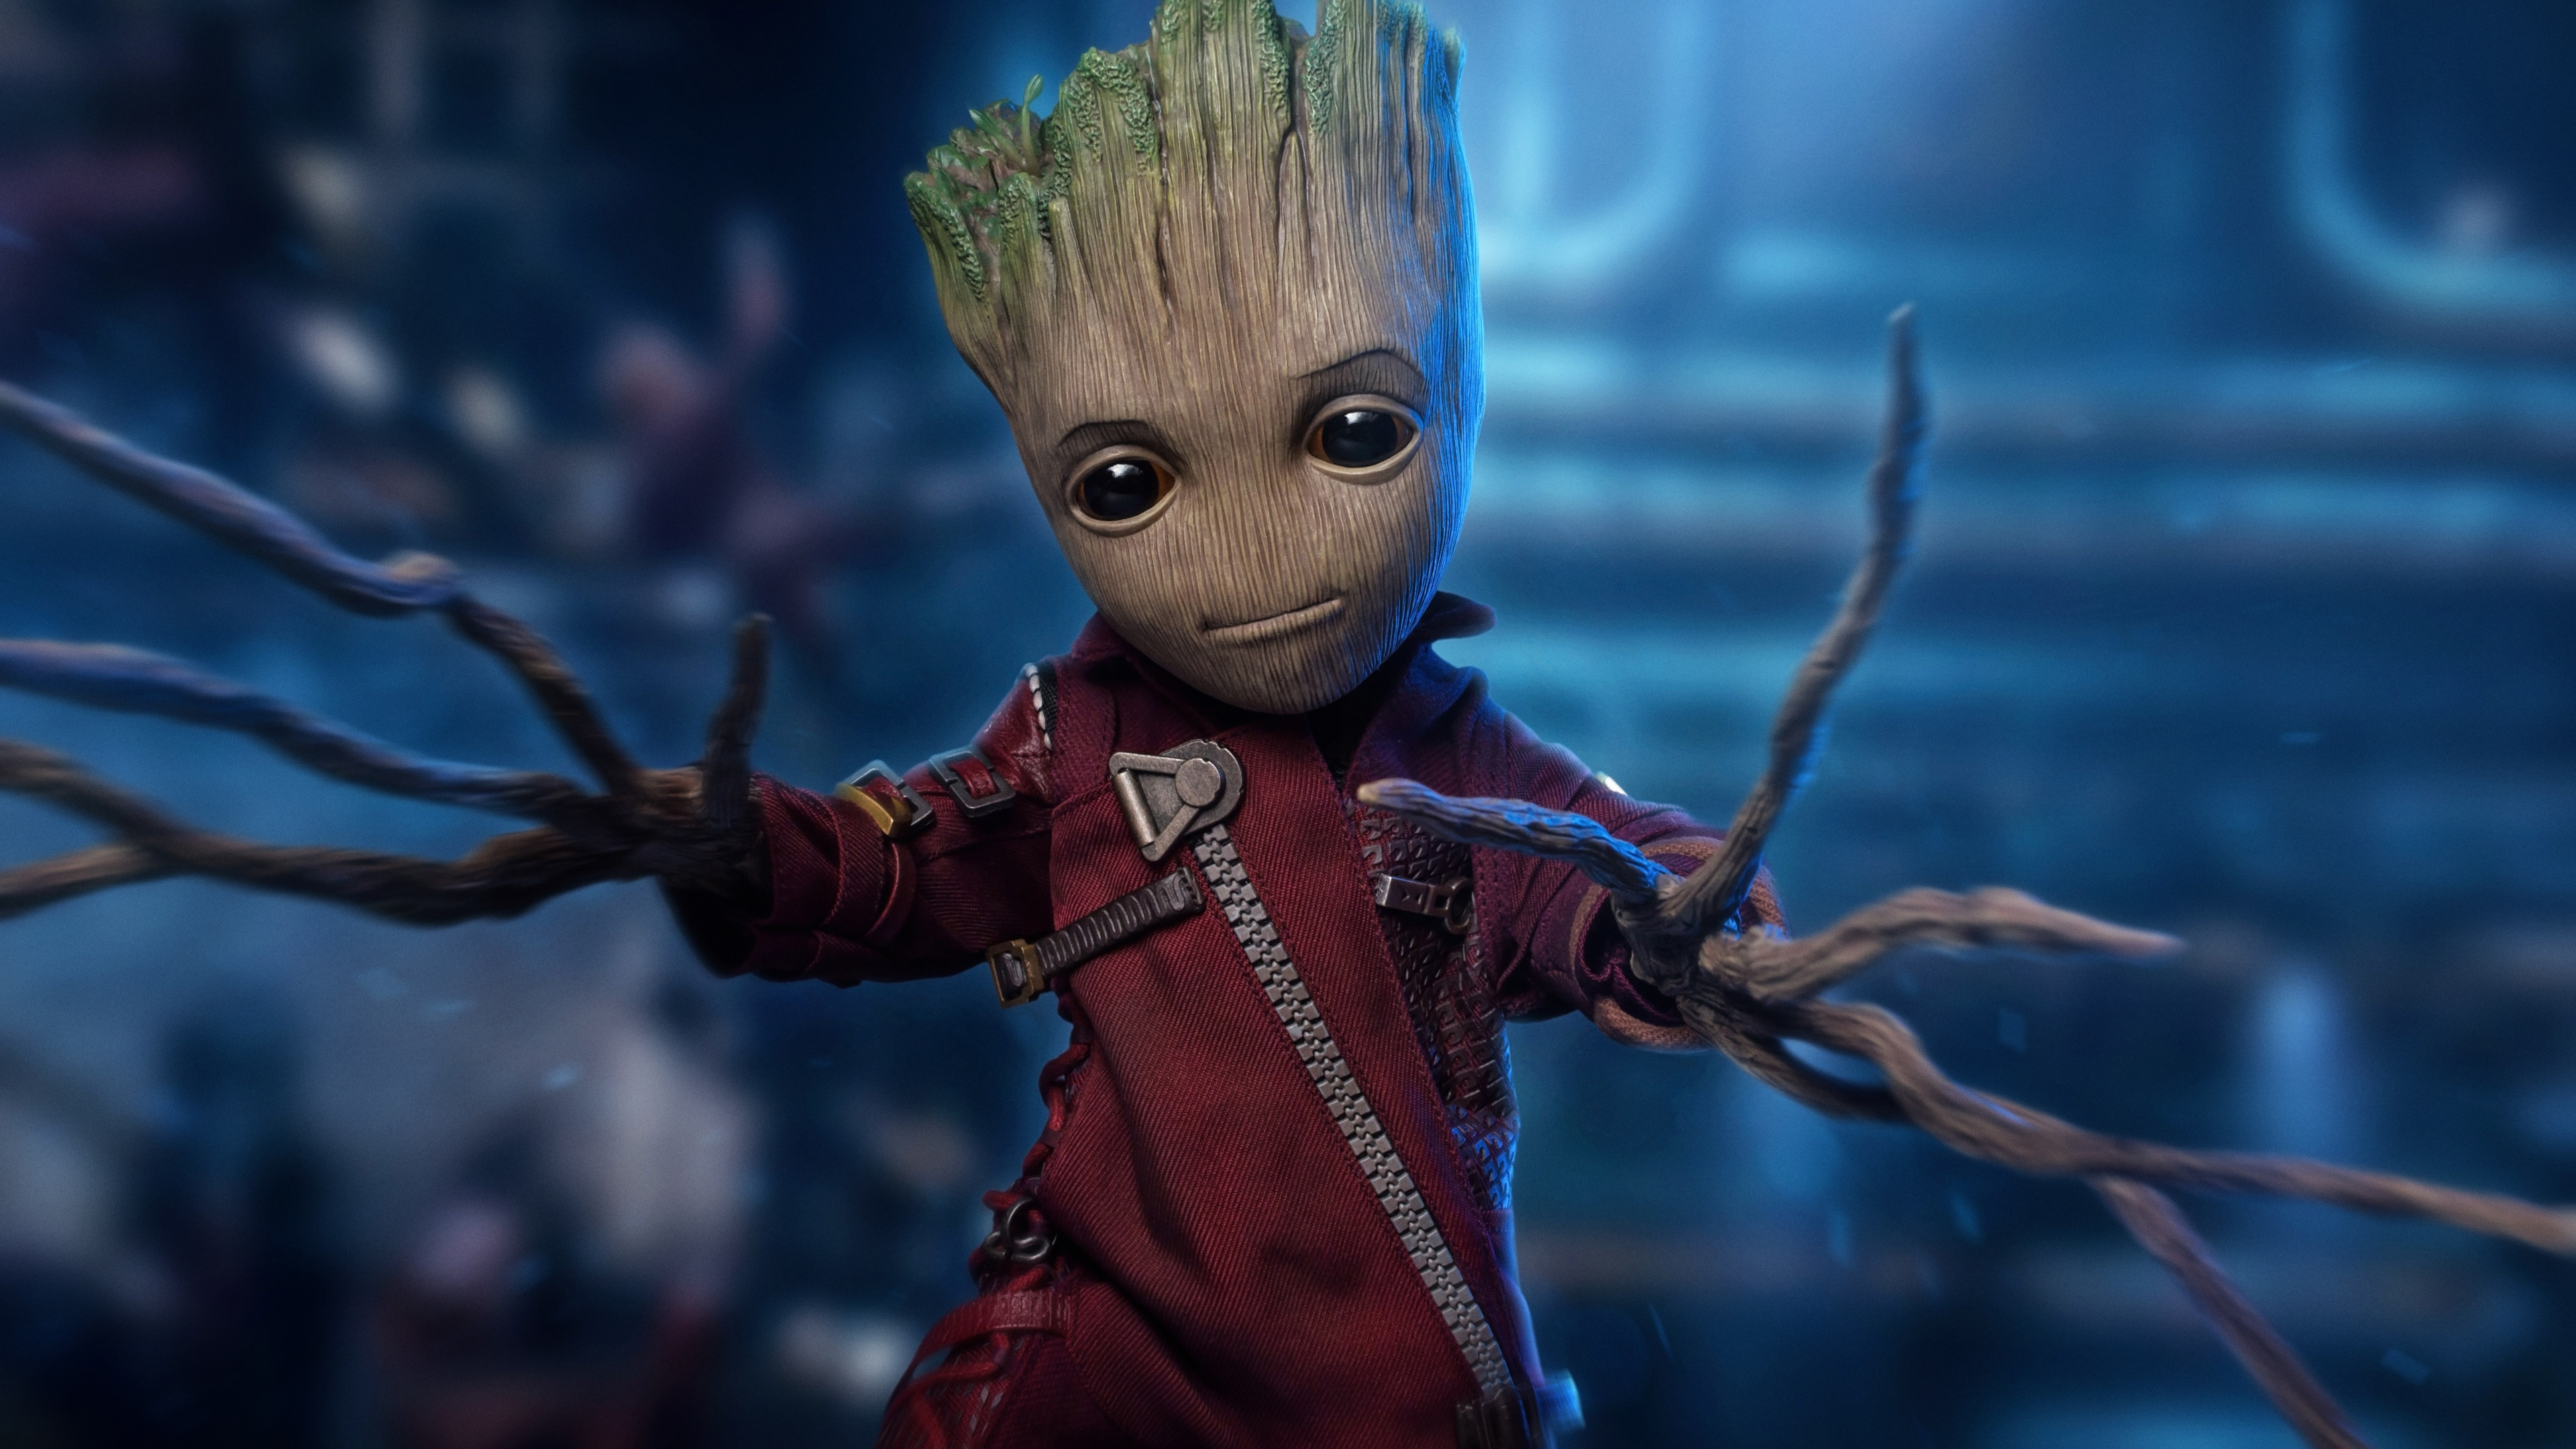 Baby Groot Guardians Of The Galaxy Wallpaper Id 3180